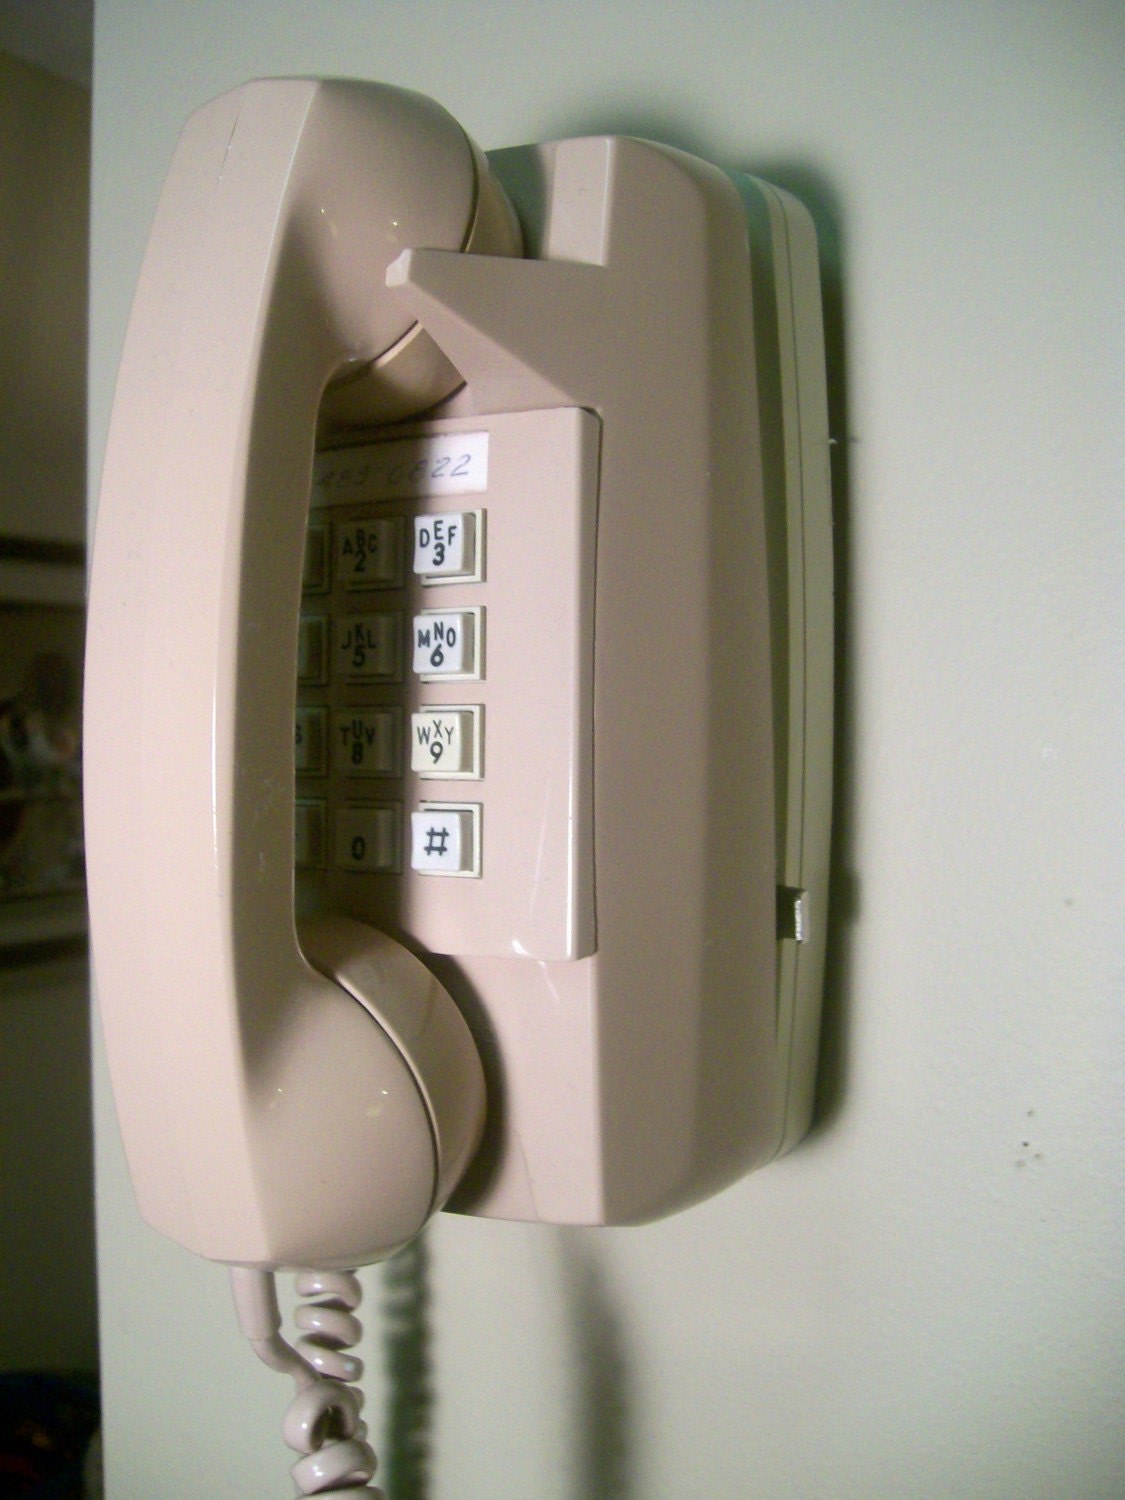 Tan Gte Wall Telephone With Wall Mount